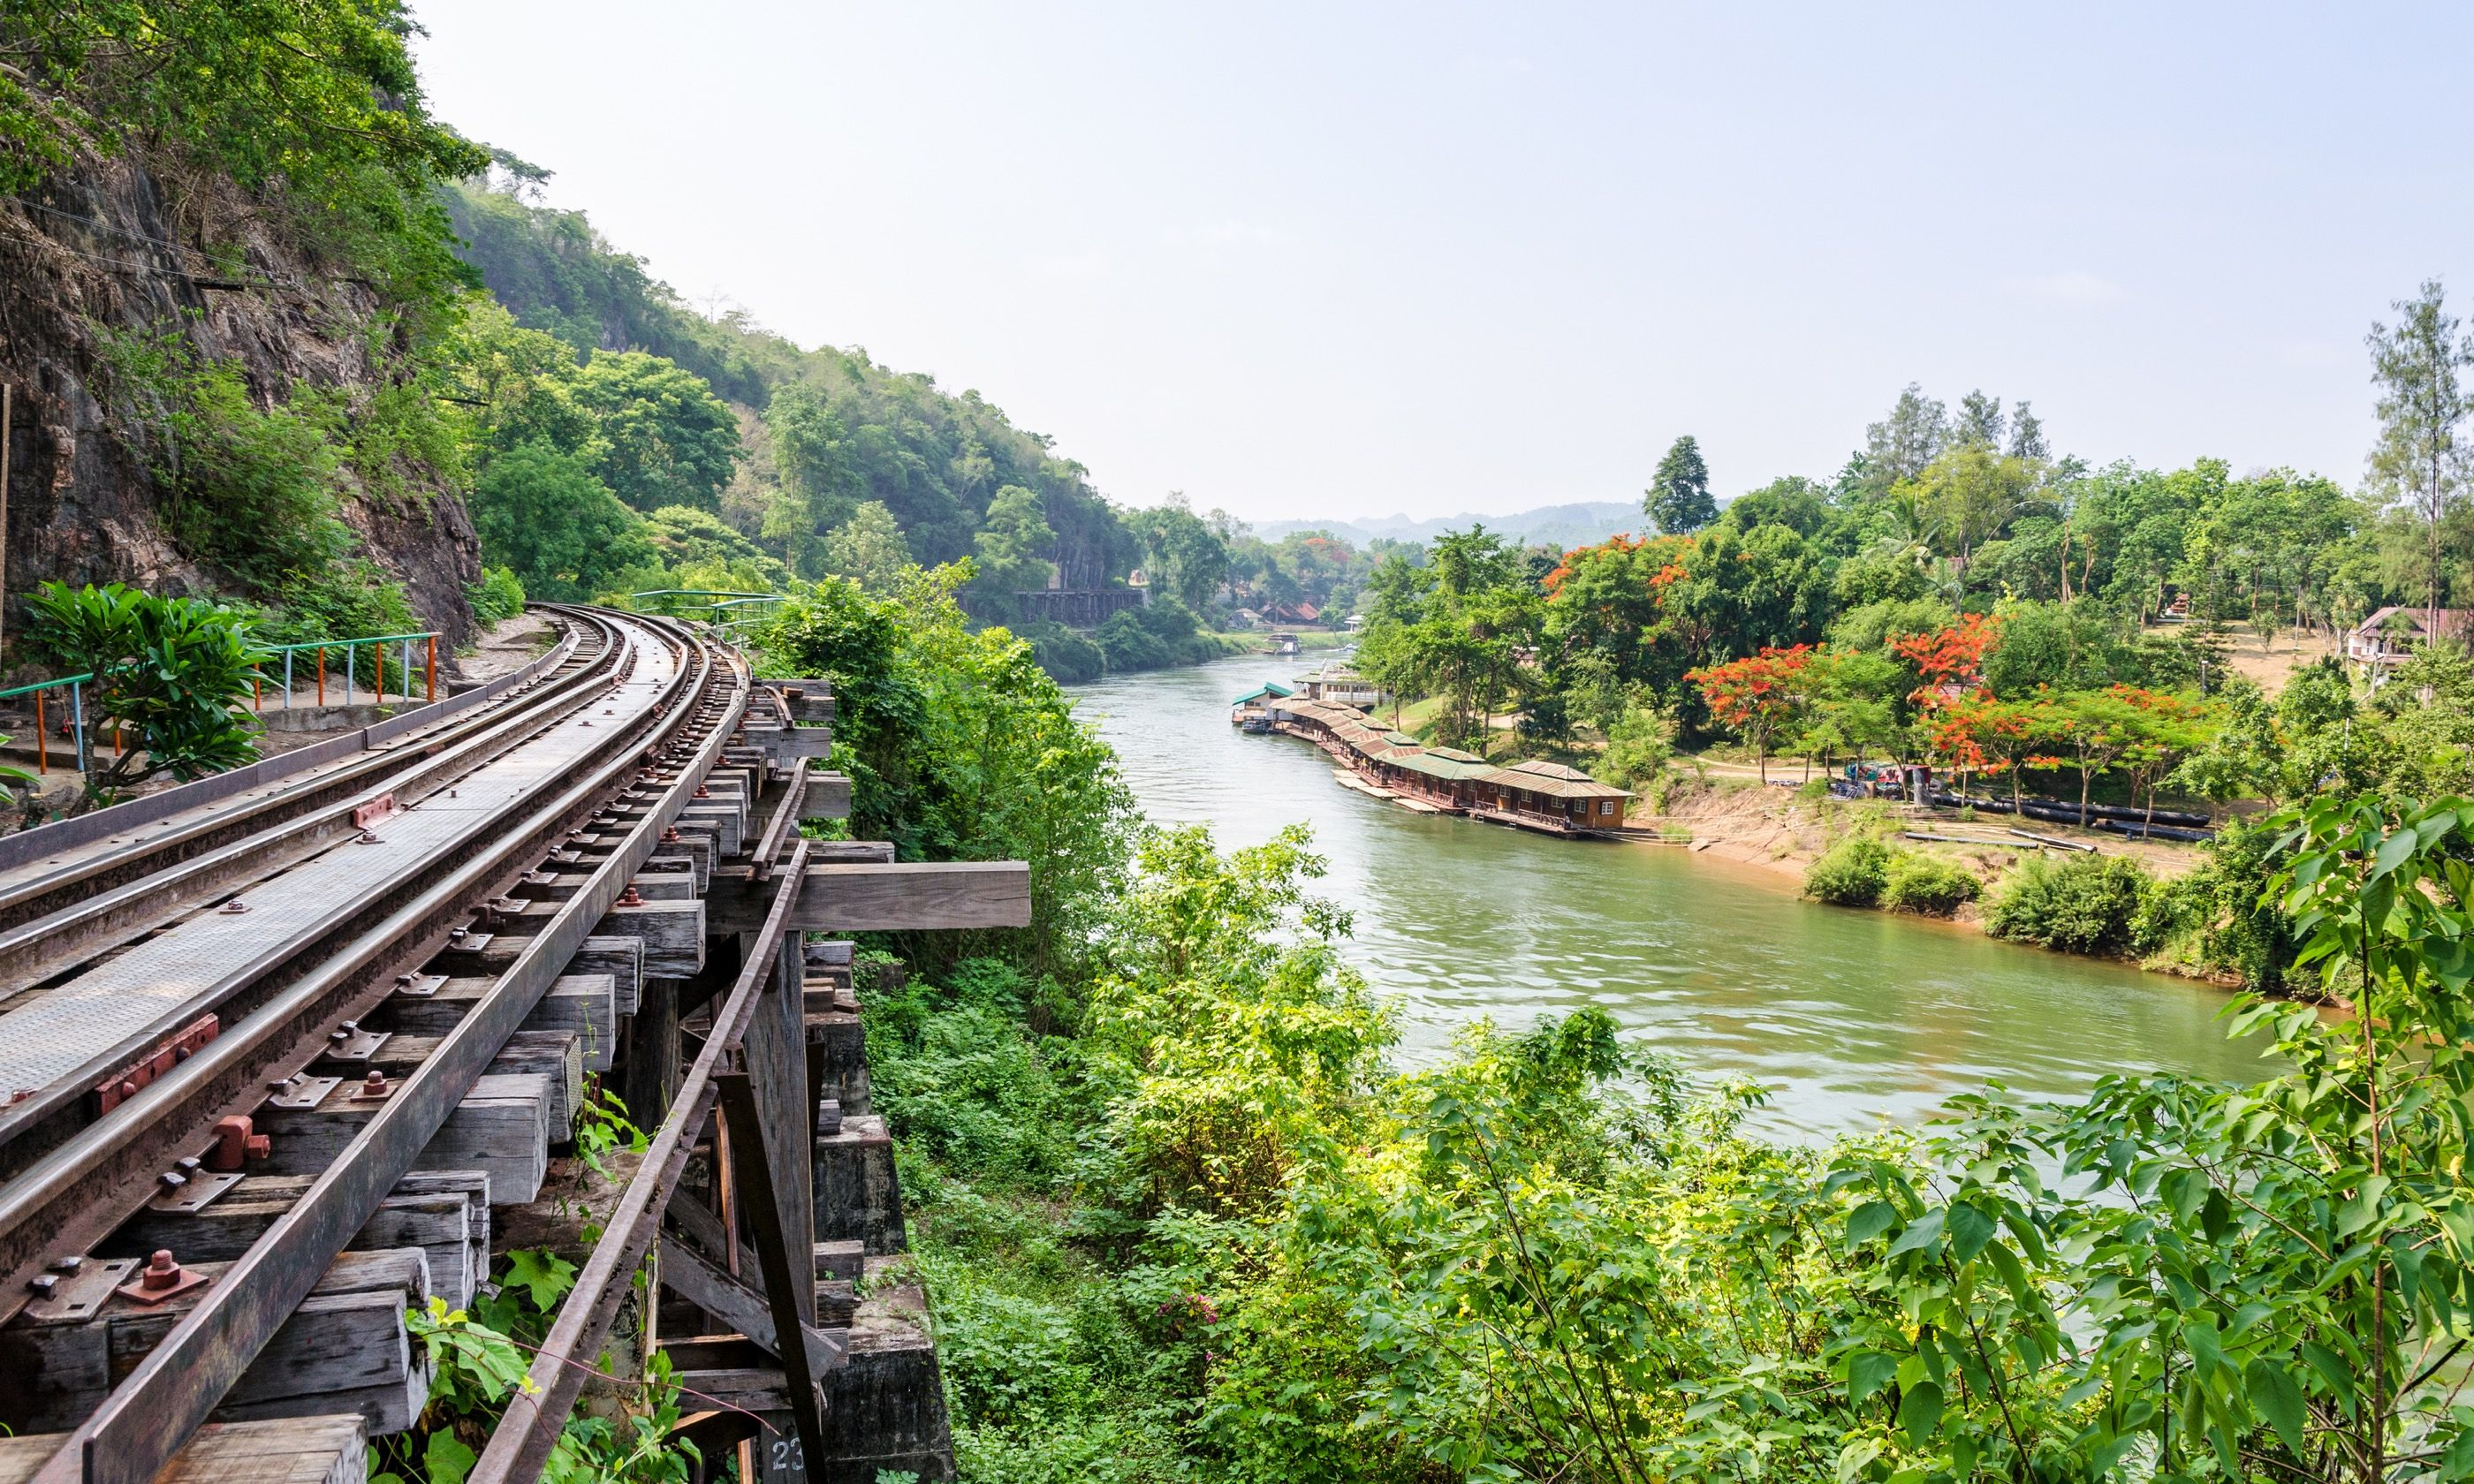 Thai-Burma railway near the River Kwai (Dreamstime)